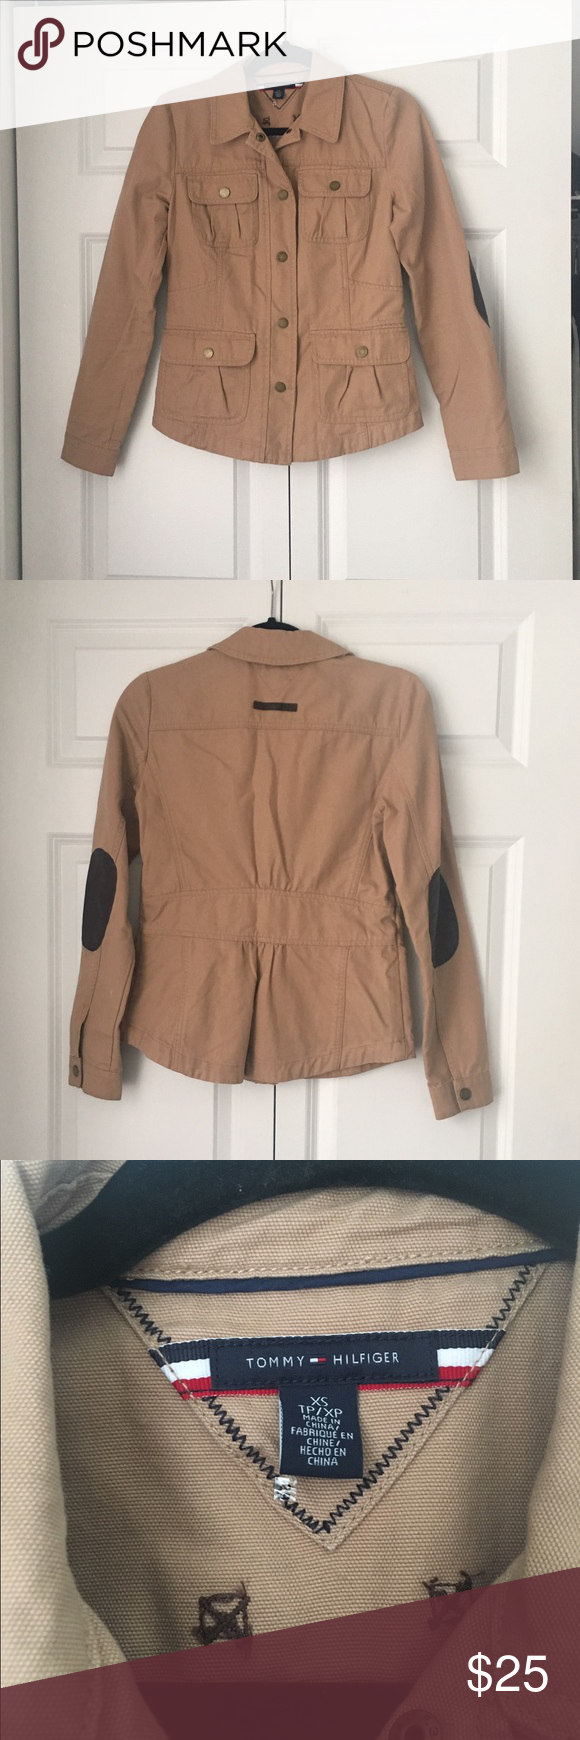 Tommy Hilfiger Cotton Twill Jacket Tan Size XS 0 Tommy Hilfiger Cotton Twill Jacket Tan Size XS Please look at all pictures, there is a small pink stain on one of the sleeves. Other than that it is in great condition! Tommy Hilfiger Jackets & Coats Utility Jackets